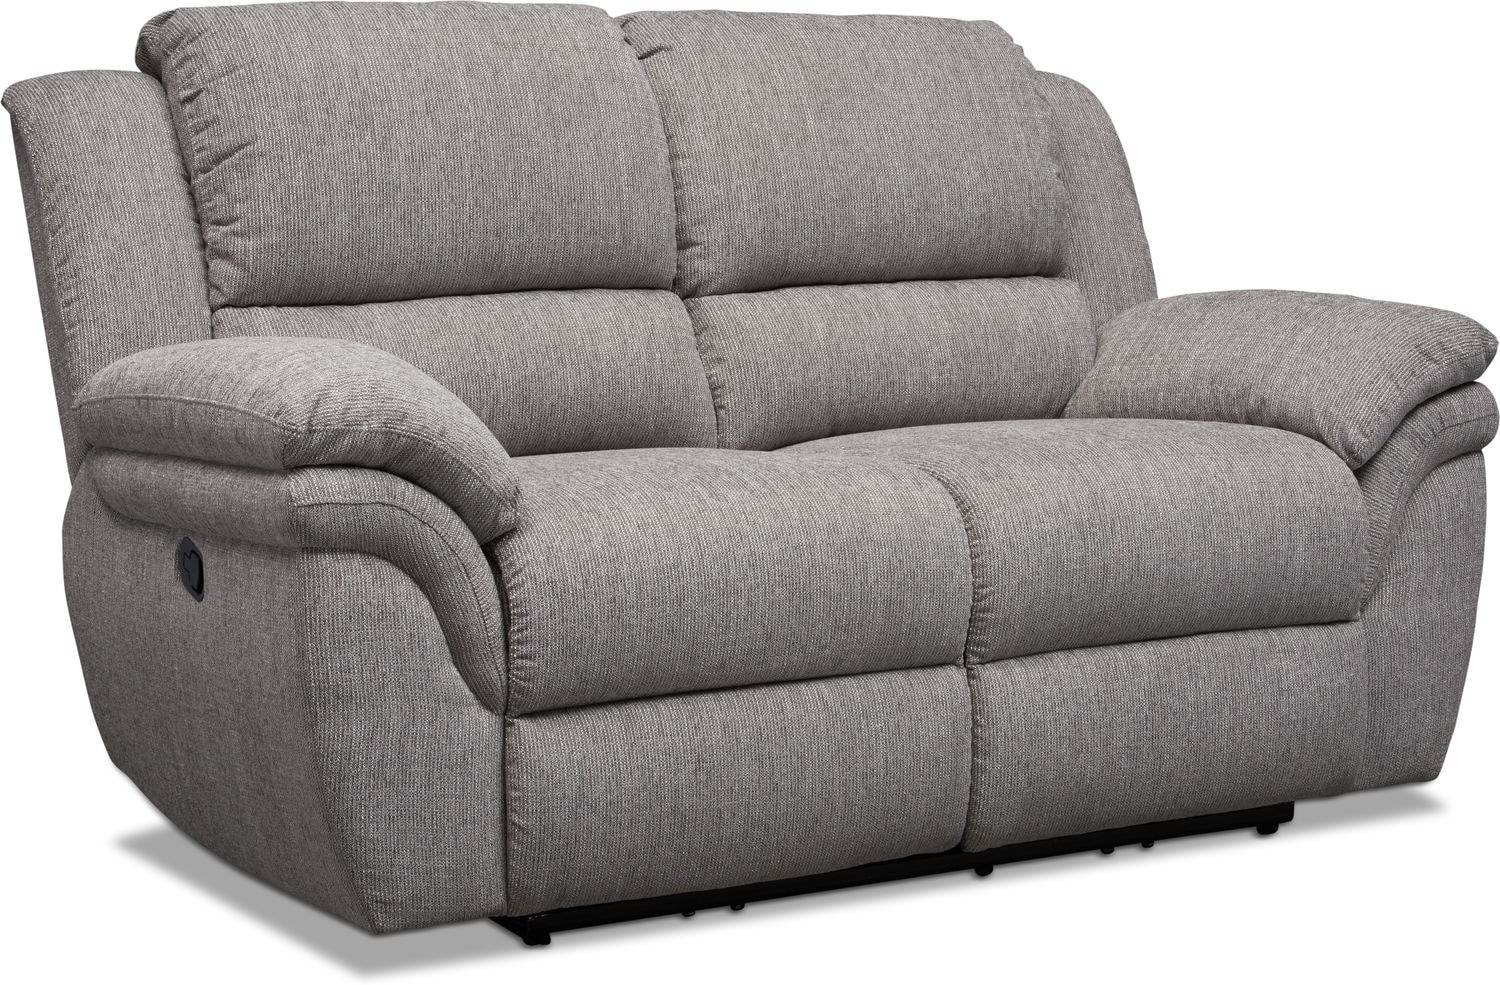 Swell Aldo Manual Reclining Loveseat Pabps2019 Chair Design Images Pabps2019Com